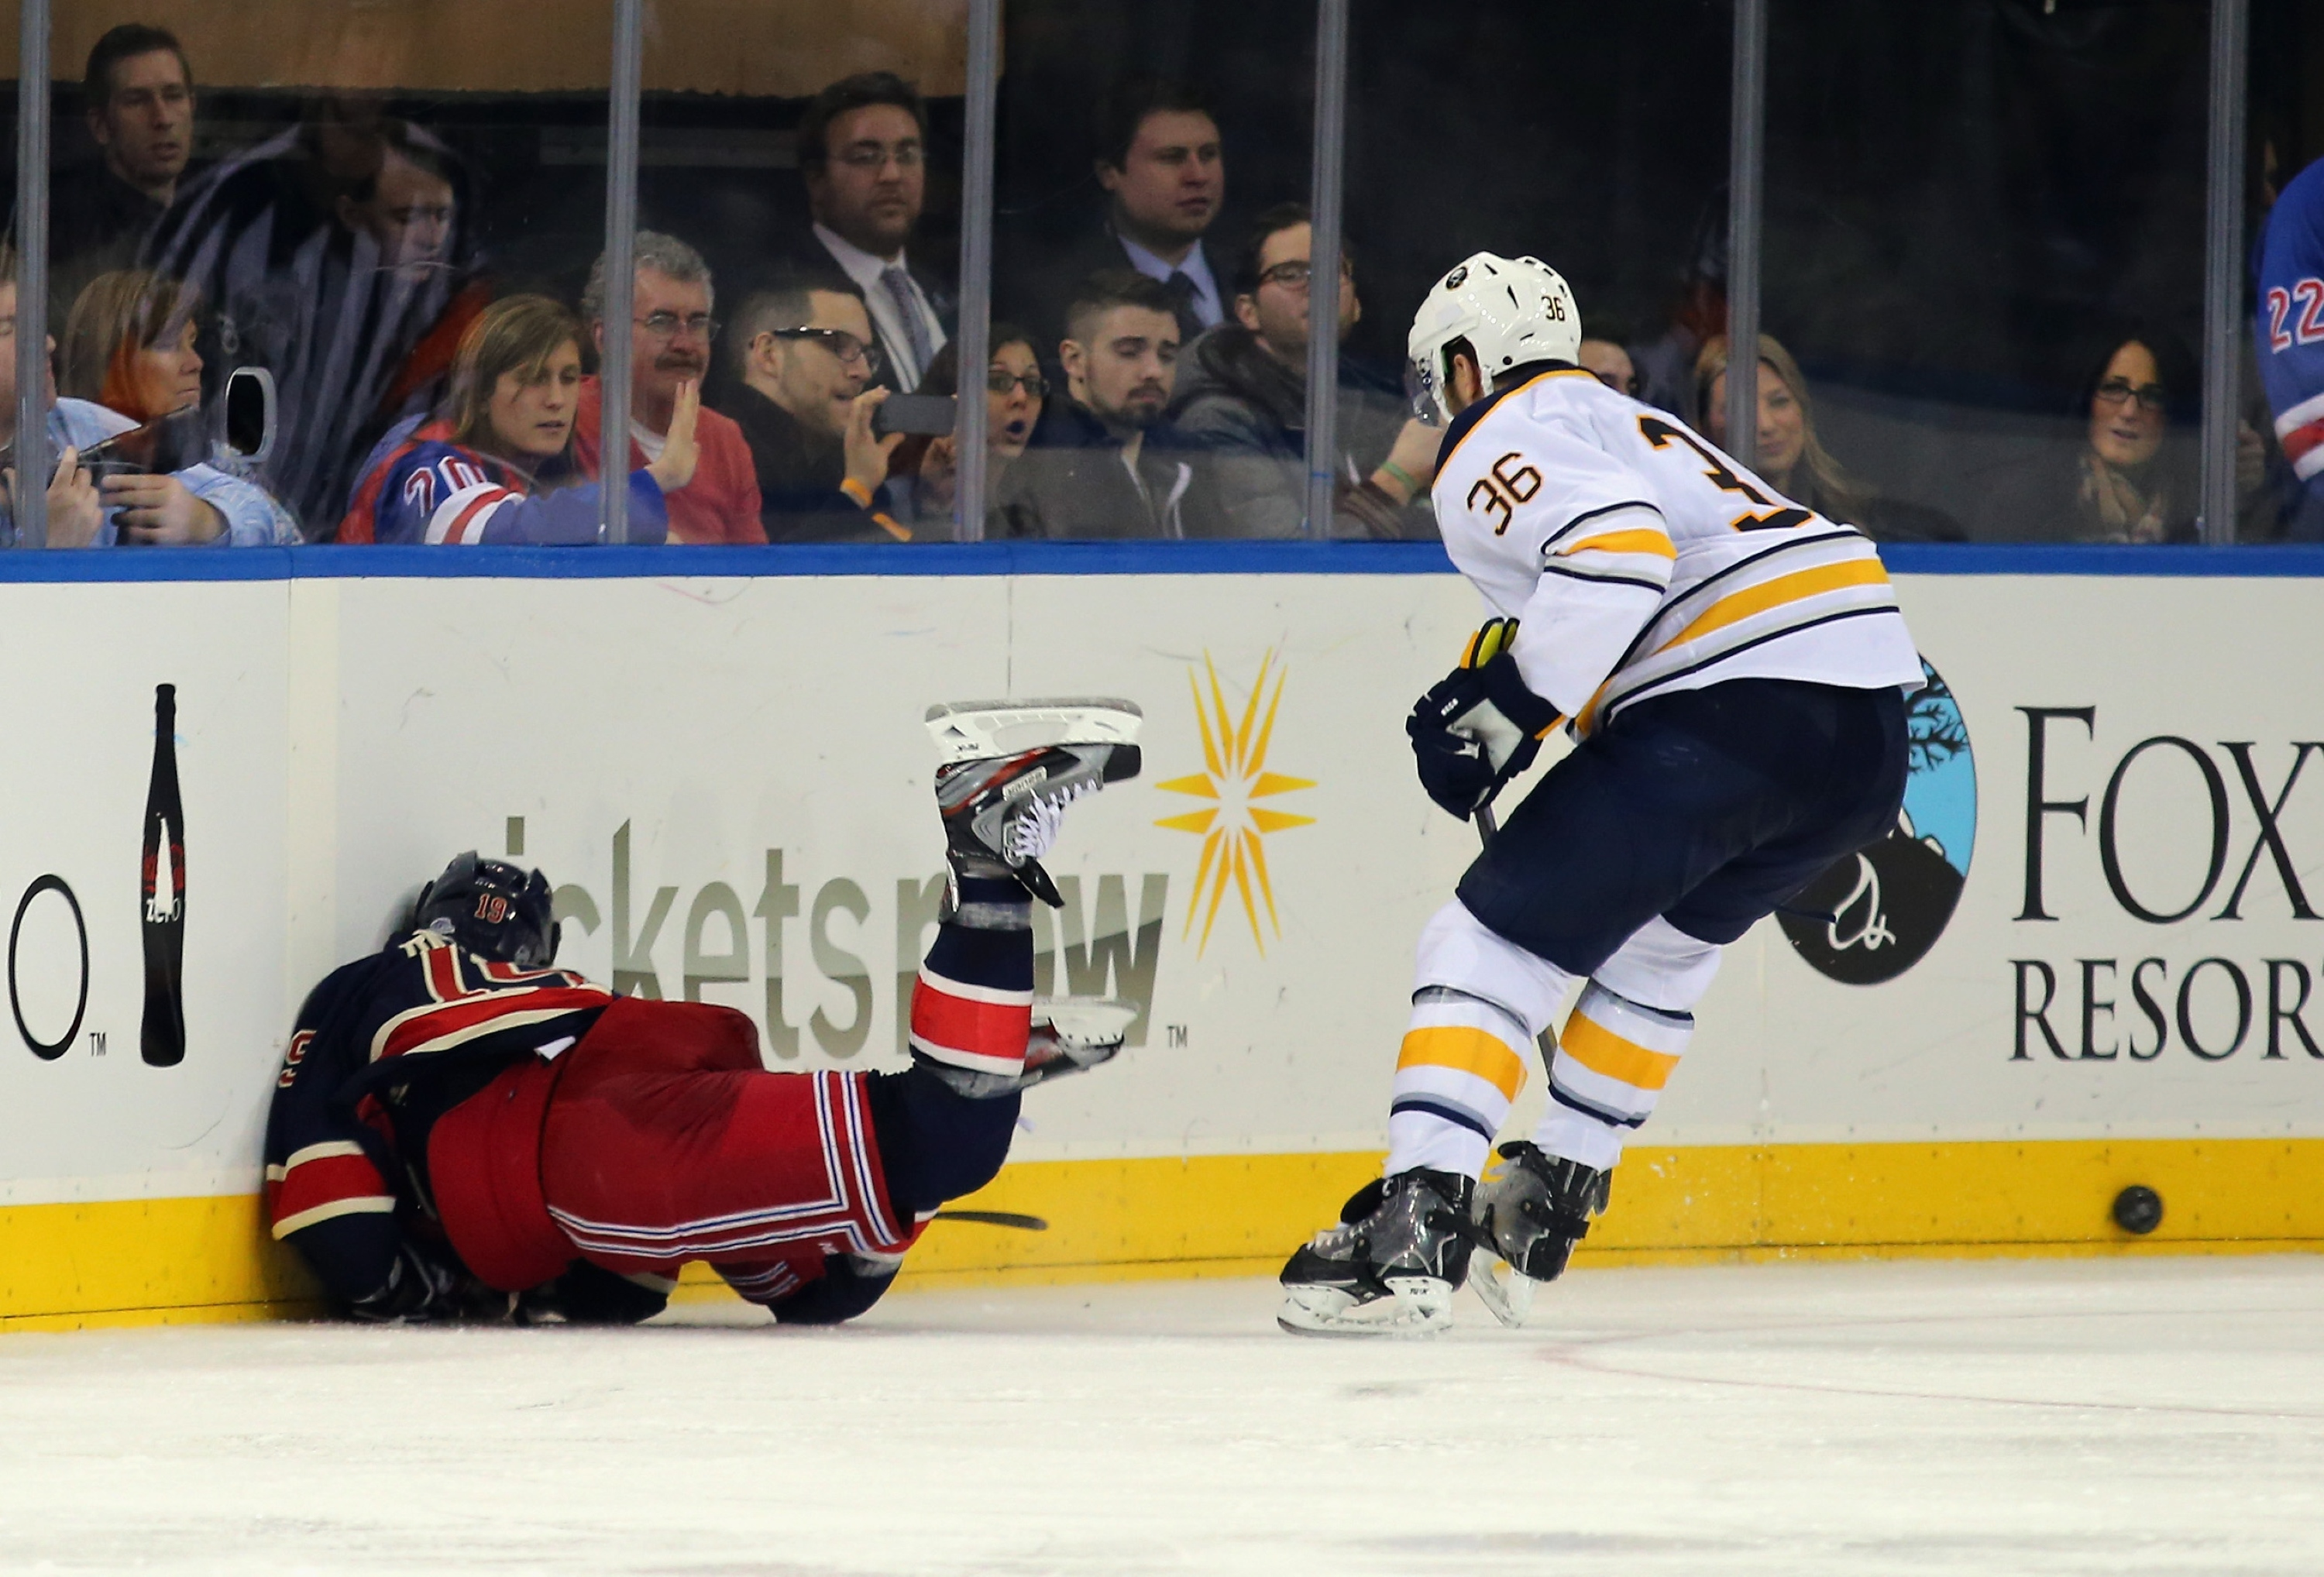 Patrick Kaleta's hit on Brad Richards. (Getty)